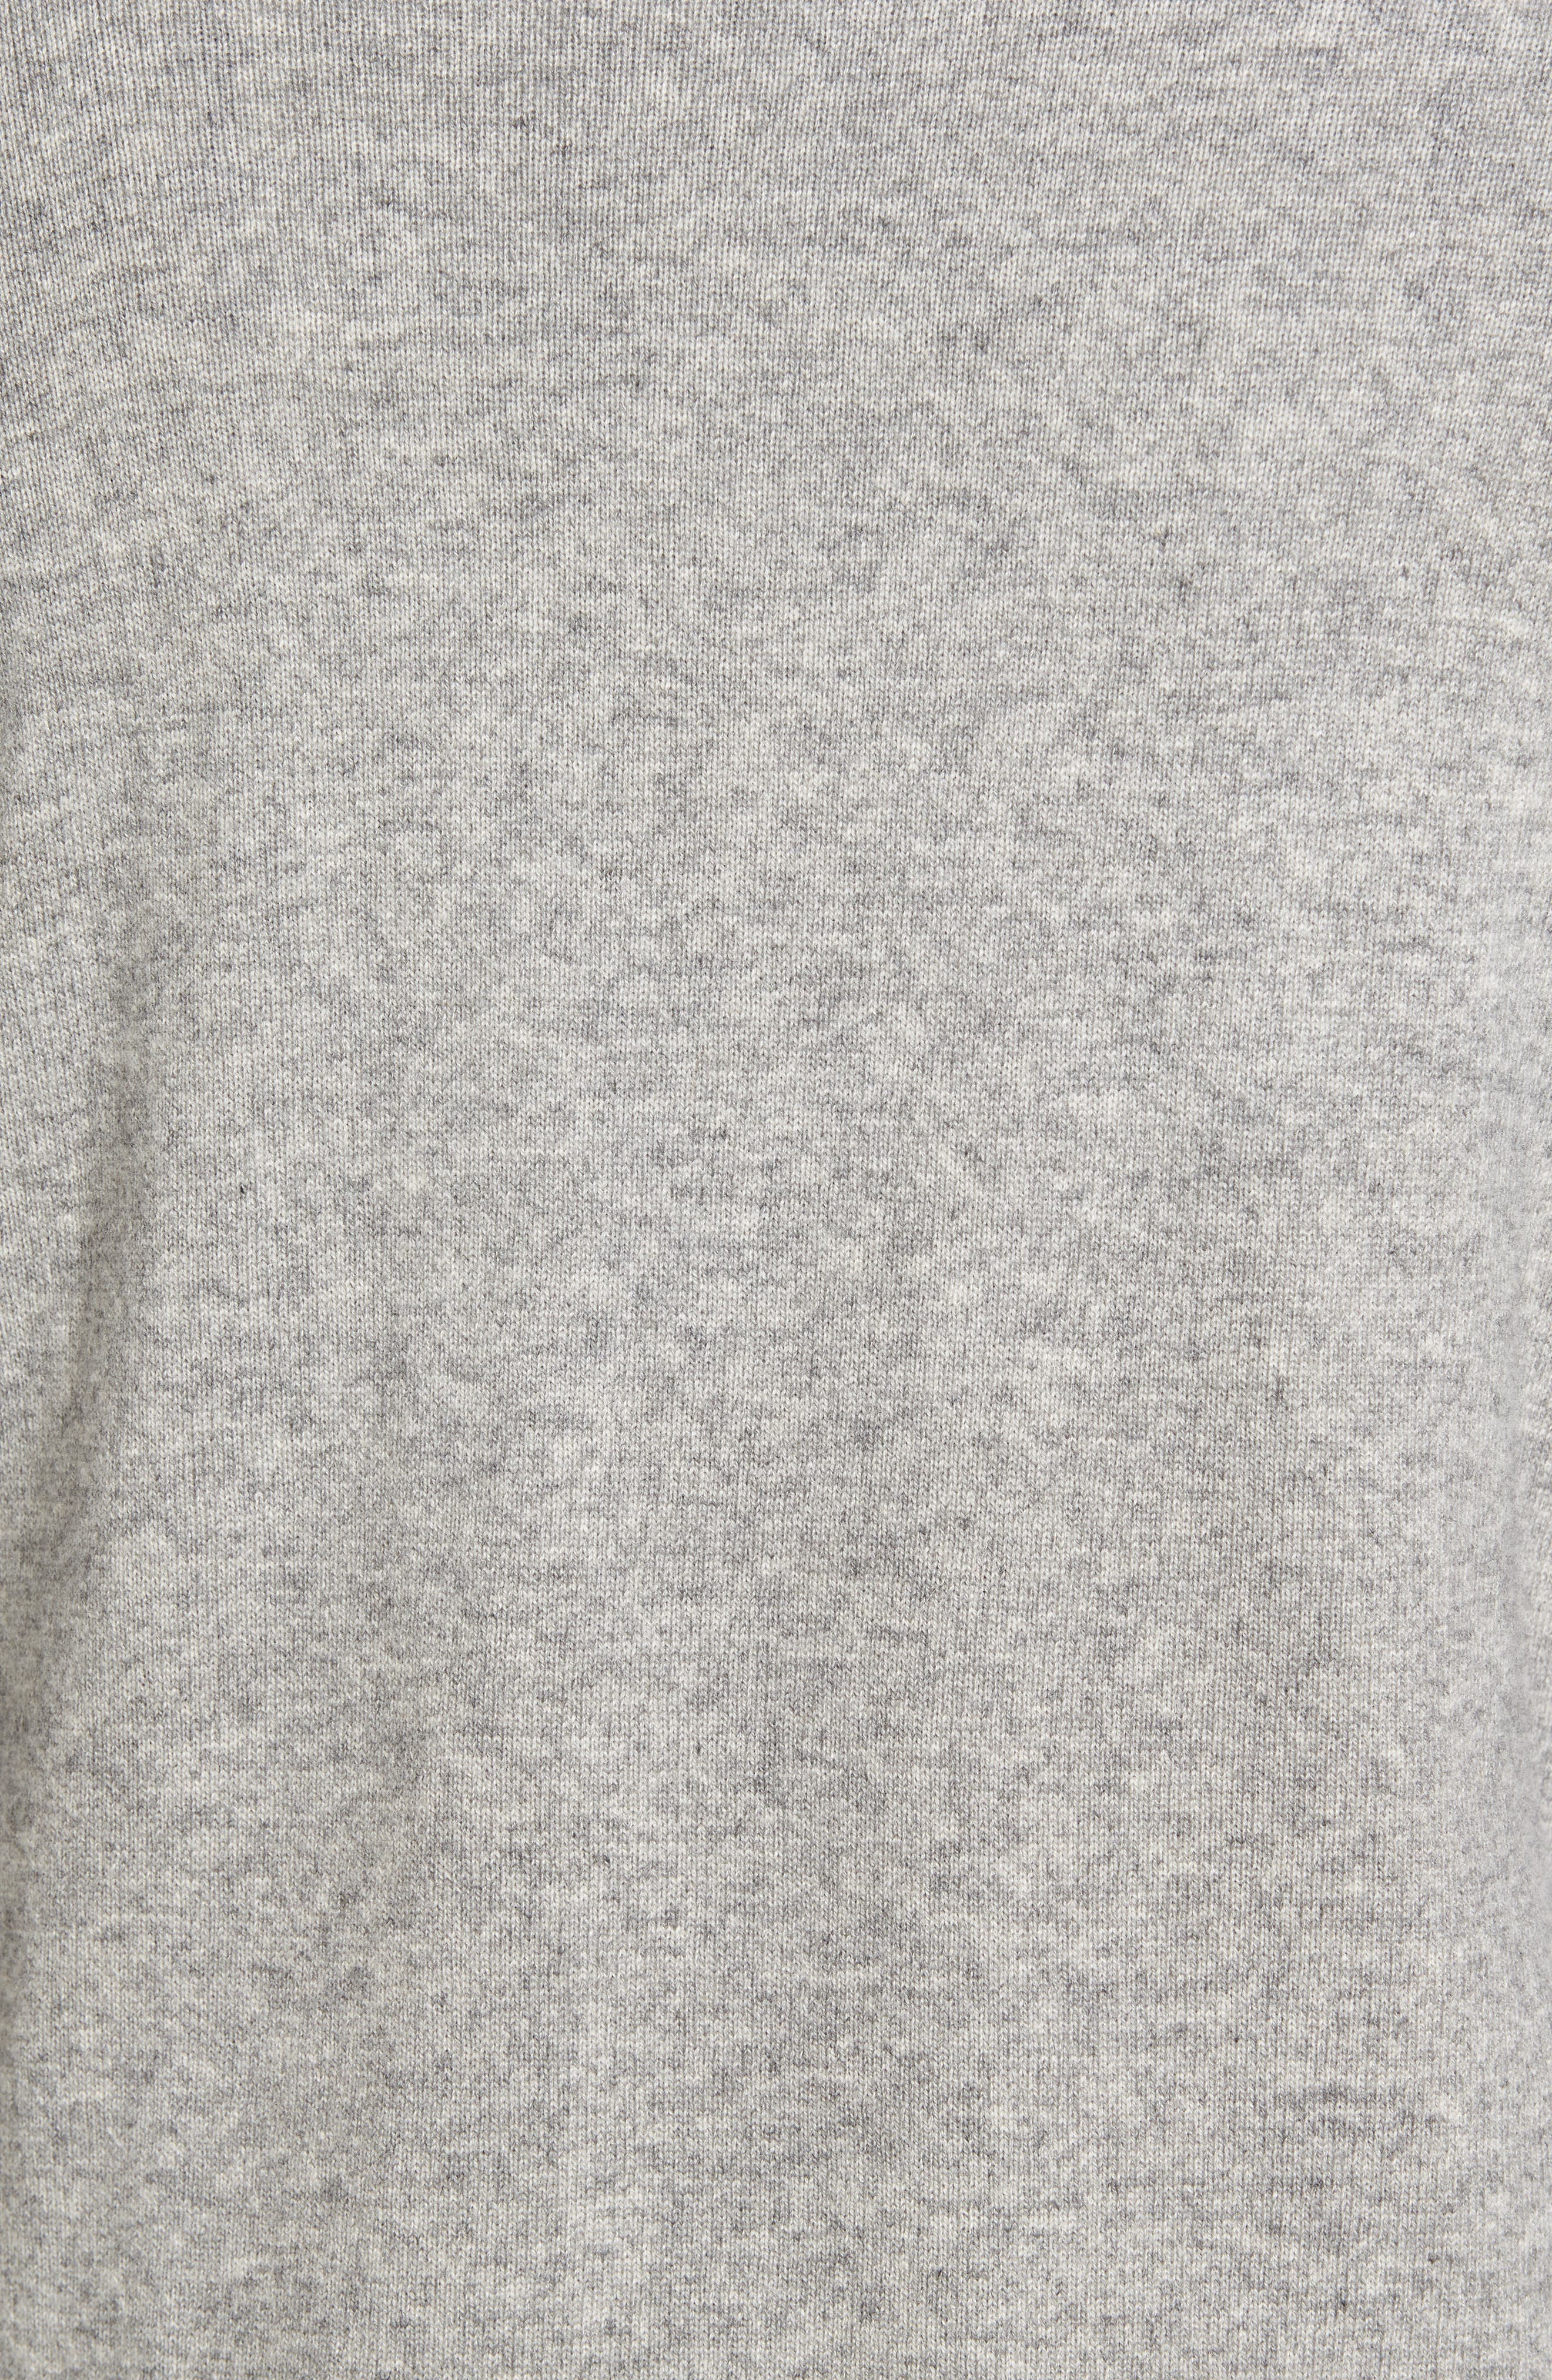 'Inchbonnie' Wool & Cashmere V-Neck Sweater,                             Alternate thumbnail 5, color,                             020